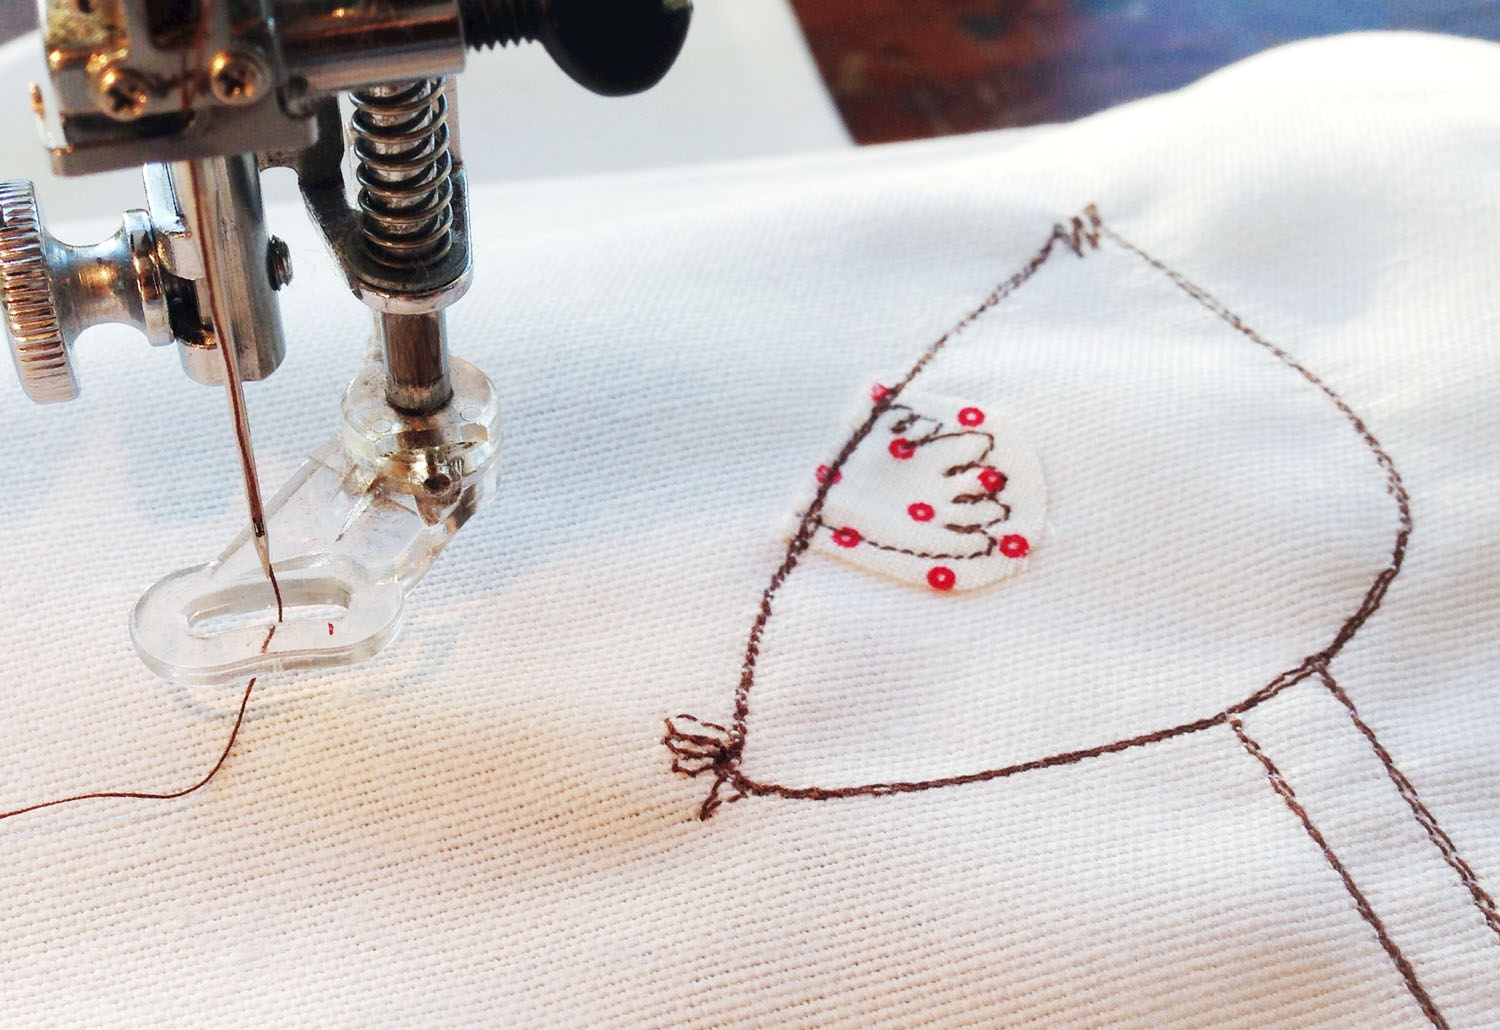 Charlotte Macey, embroidery, machine embroidery